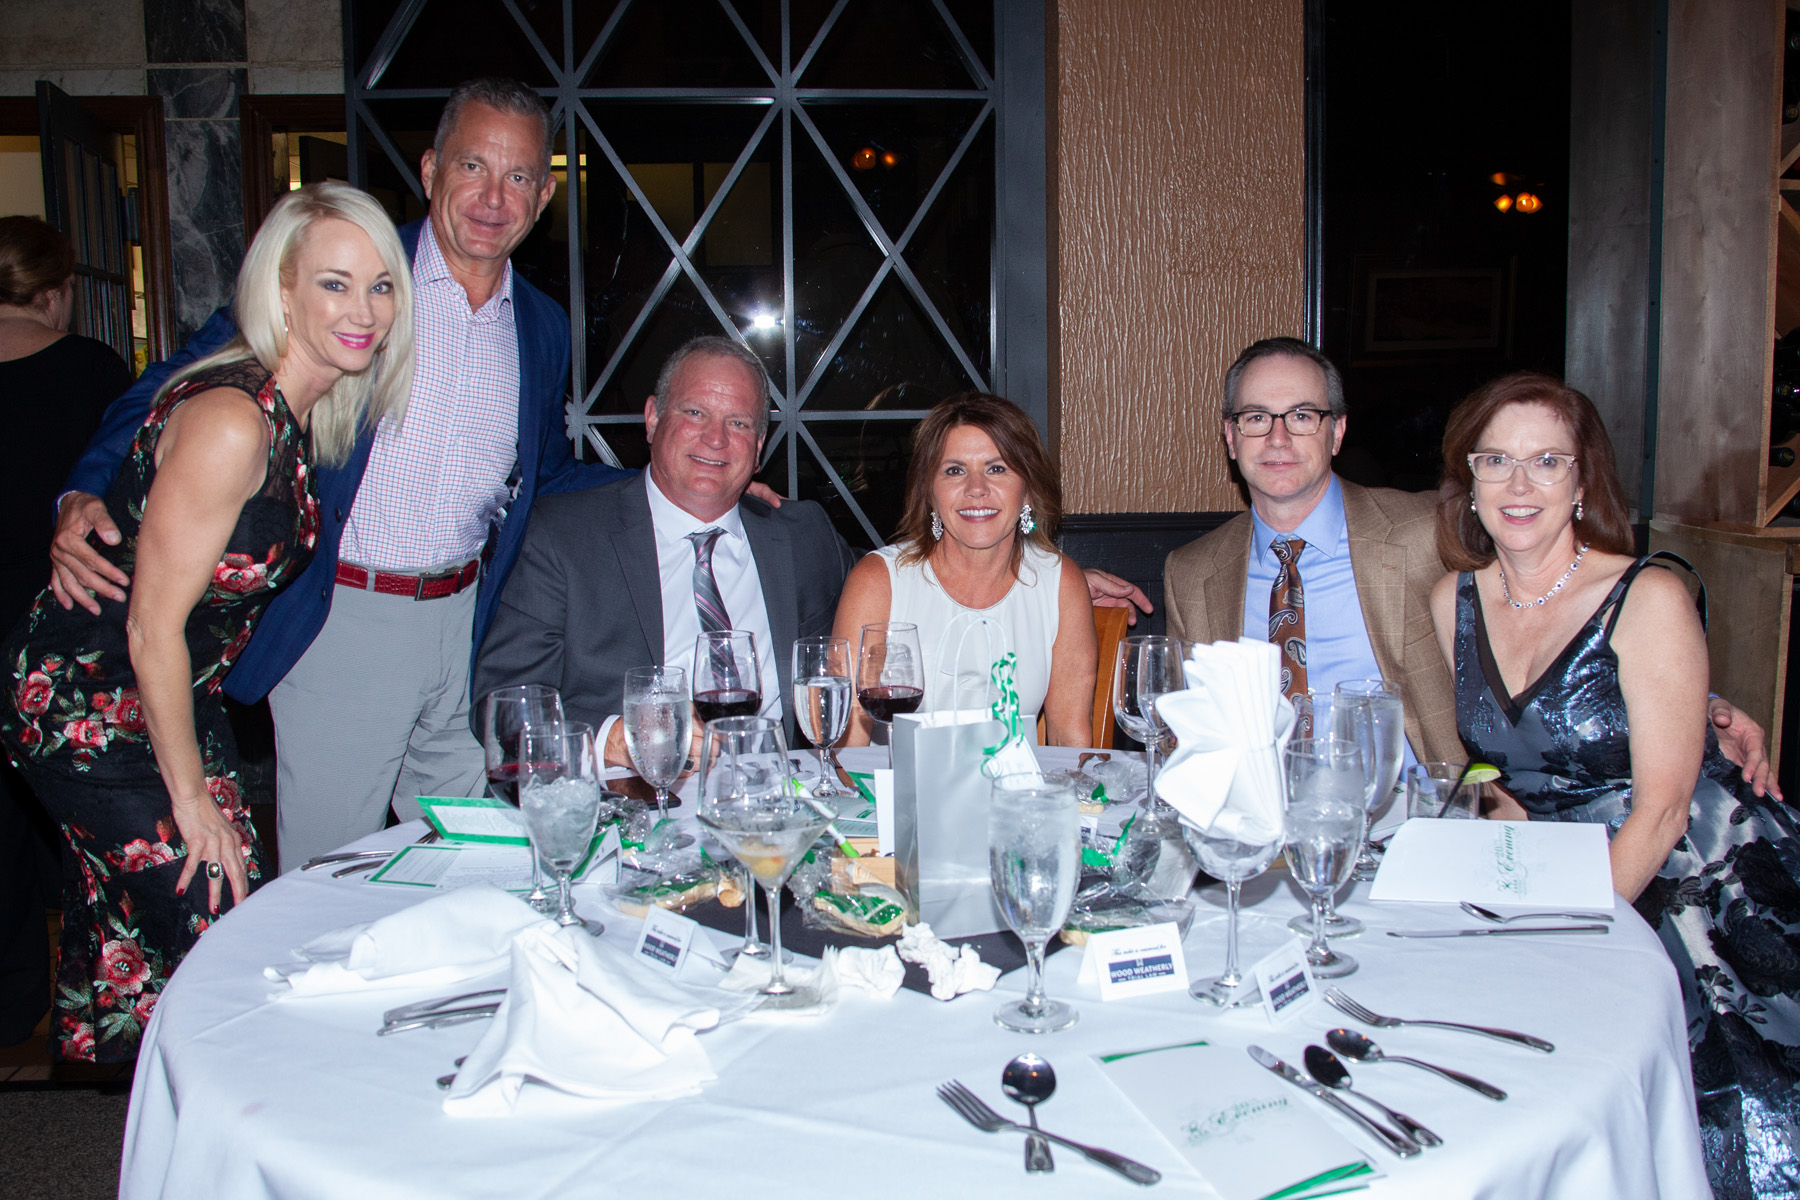 CASA's 21st annual event to support local children in foster care